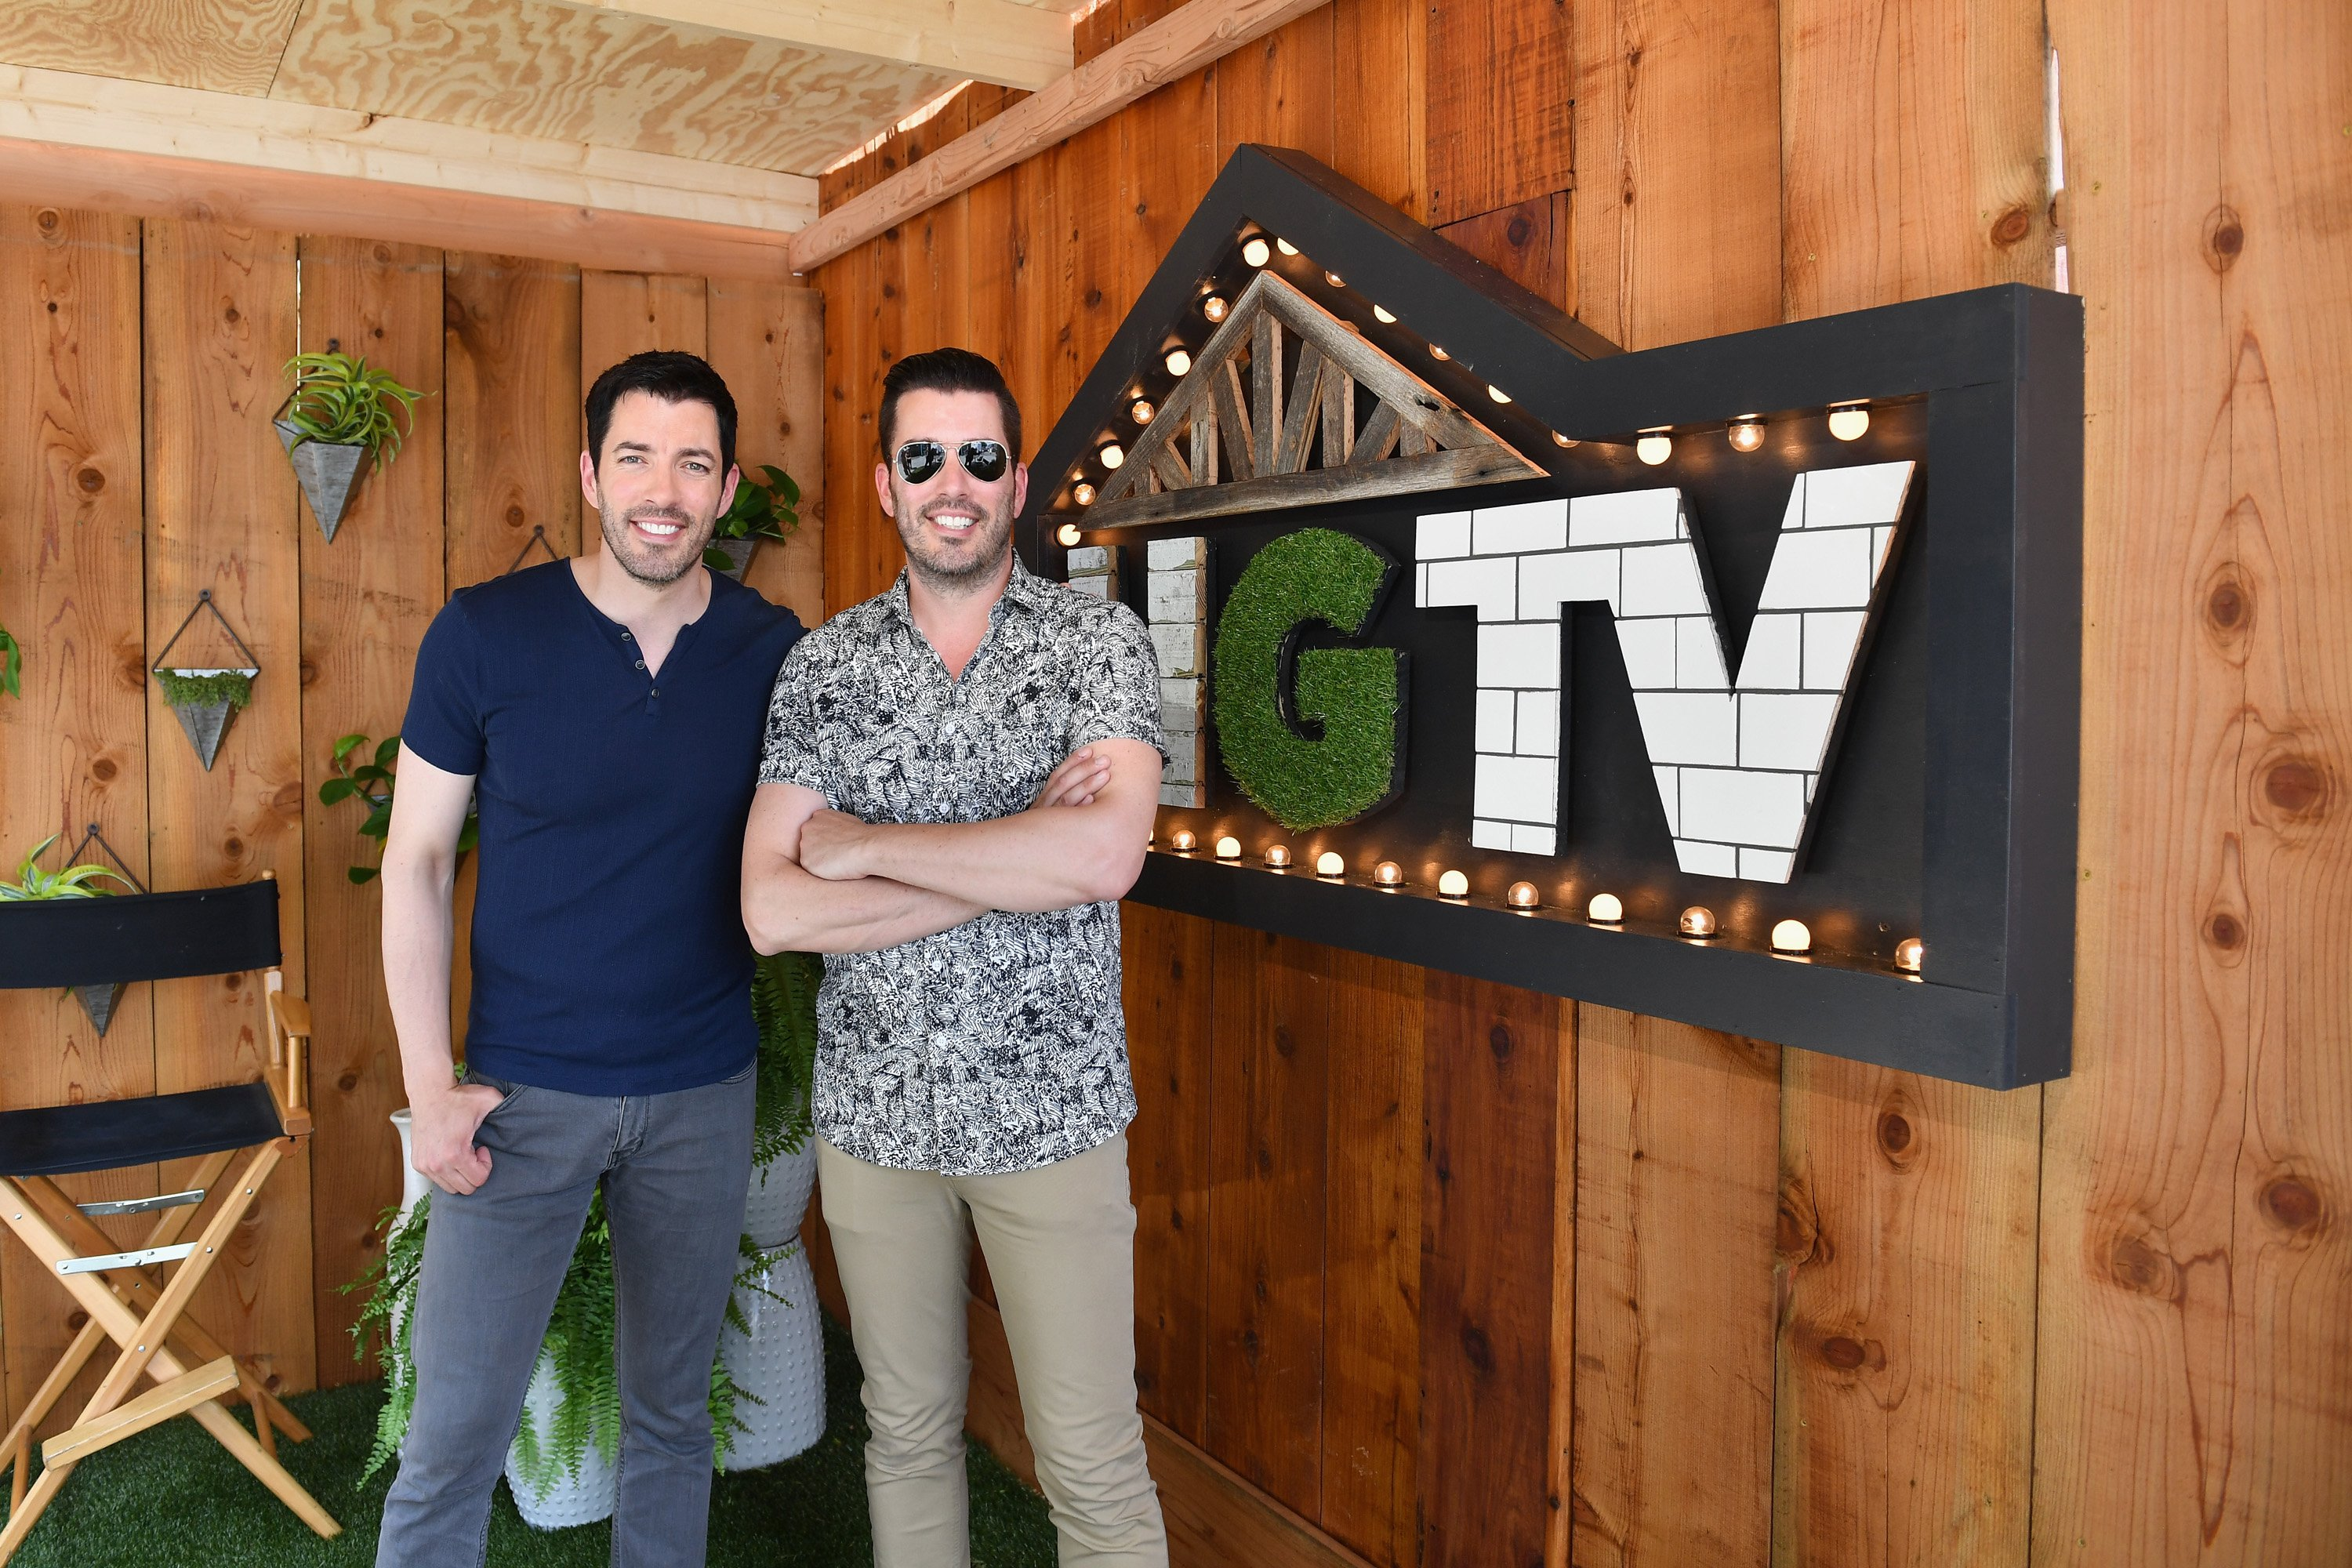 Drew and Jonathan Scott attend the HGTV Lodge at CMA Music Fest in Nashville, Tennessee on June 9, 2018 | Photo: Getty Images